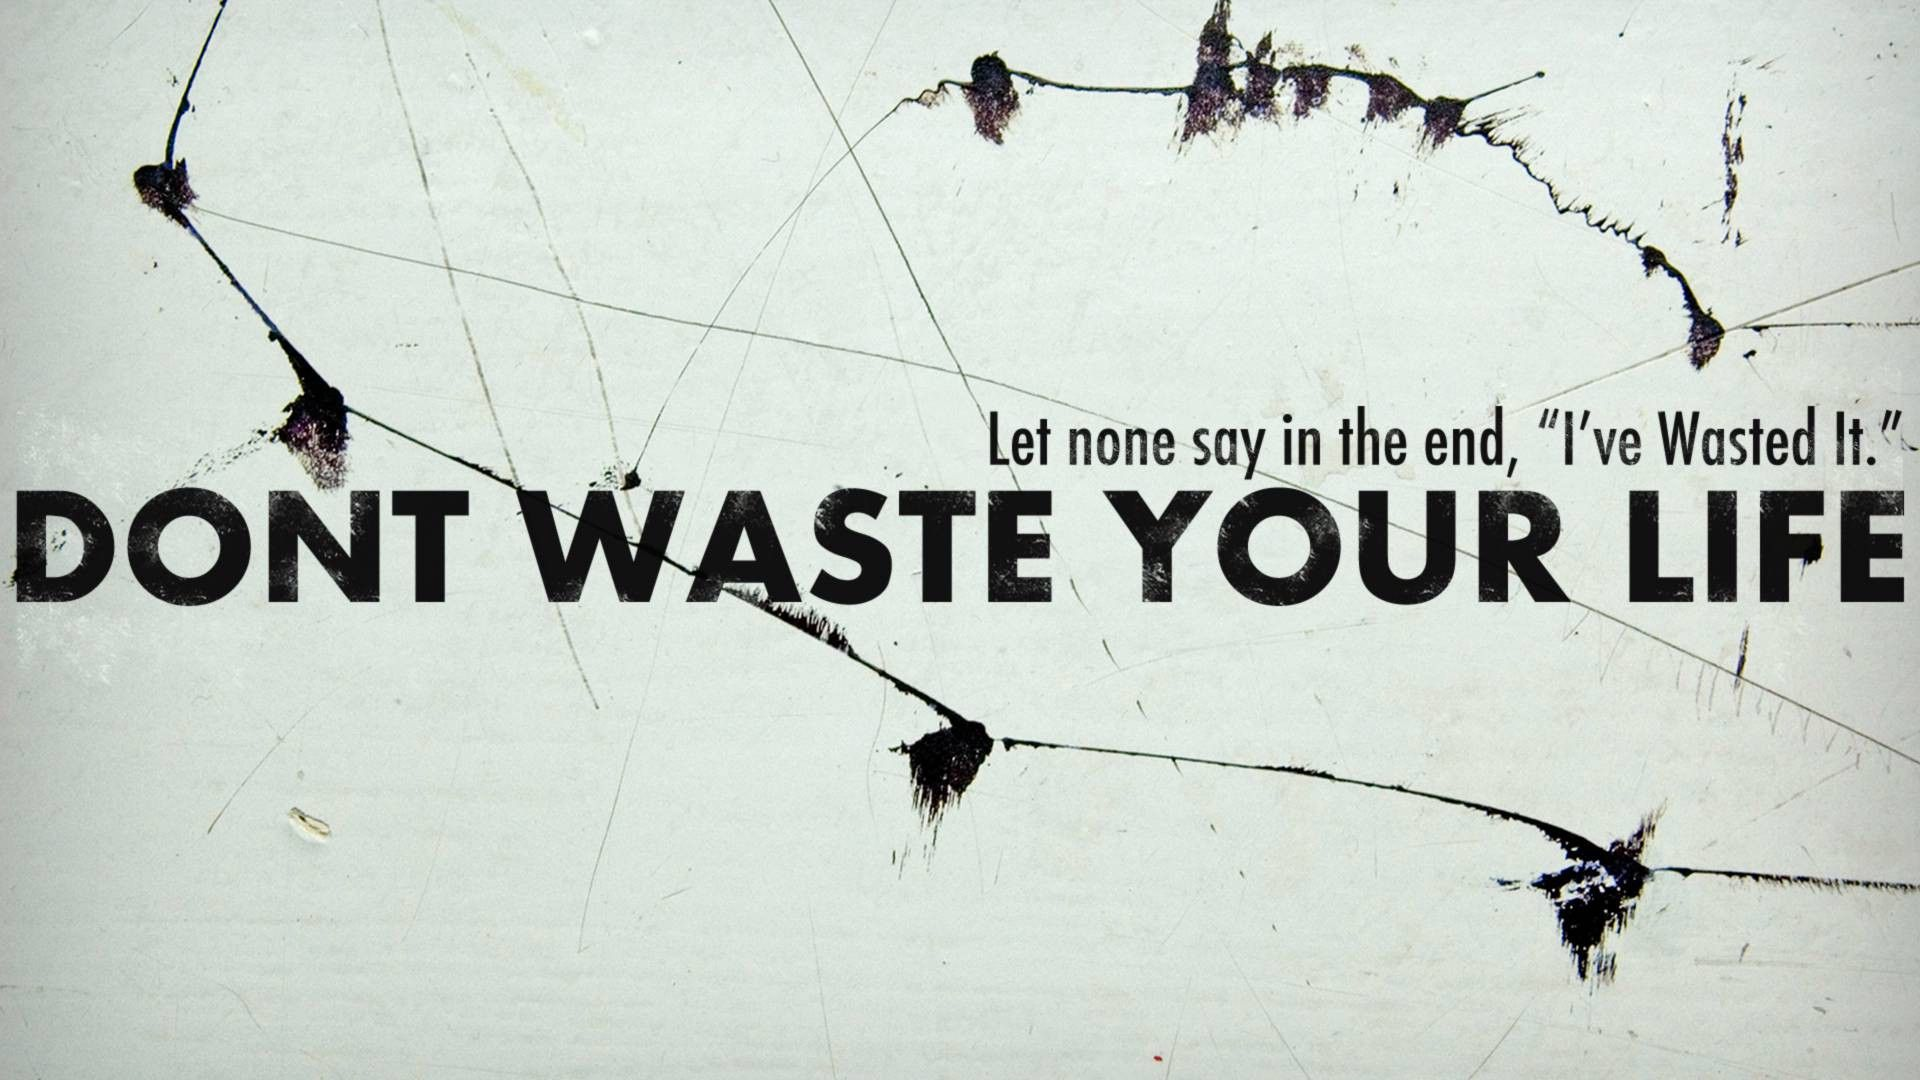 Quotes Of Dont Waste Your Life Full 720p Hd Wallpaper Whatsapp